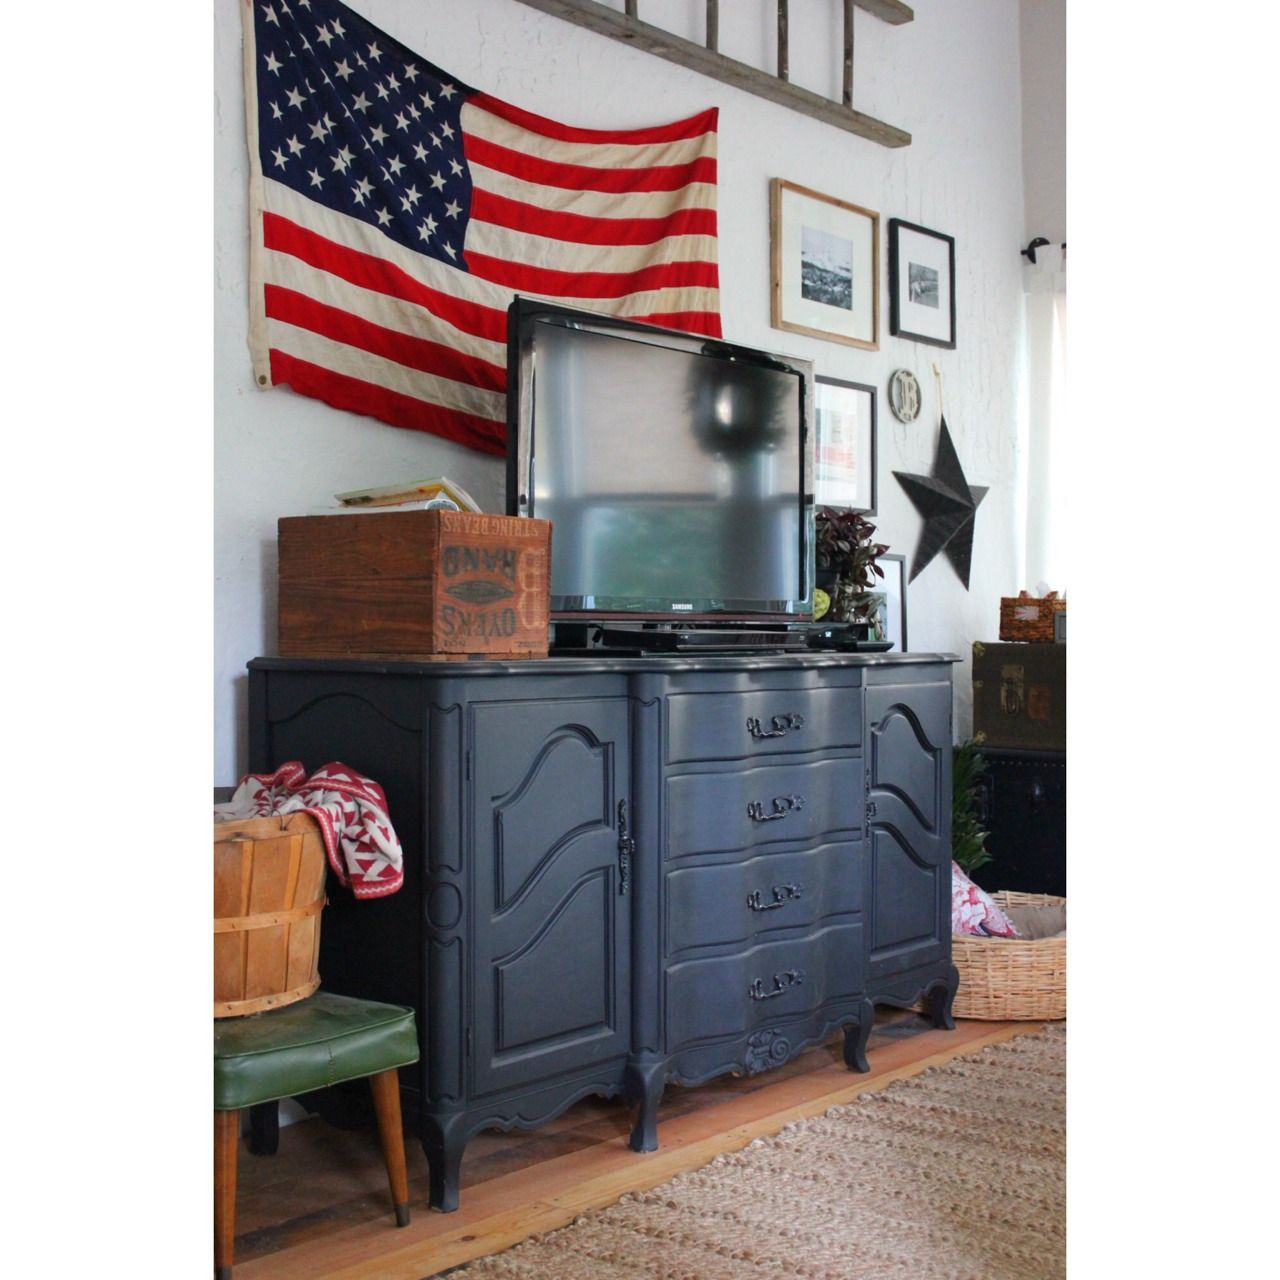 Americana Pottery Barn Inspired Living Room DIY Thrifted Painted Dresser As Entertainment Unit